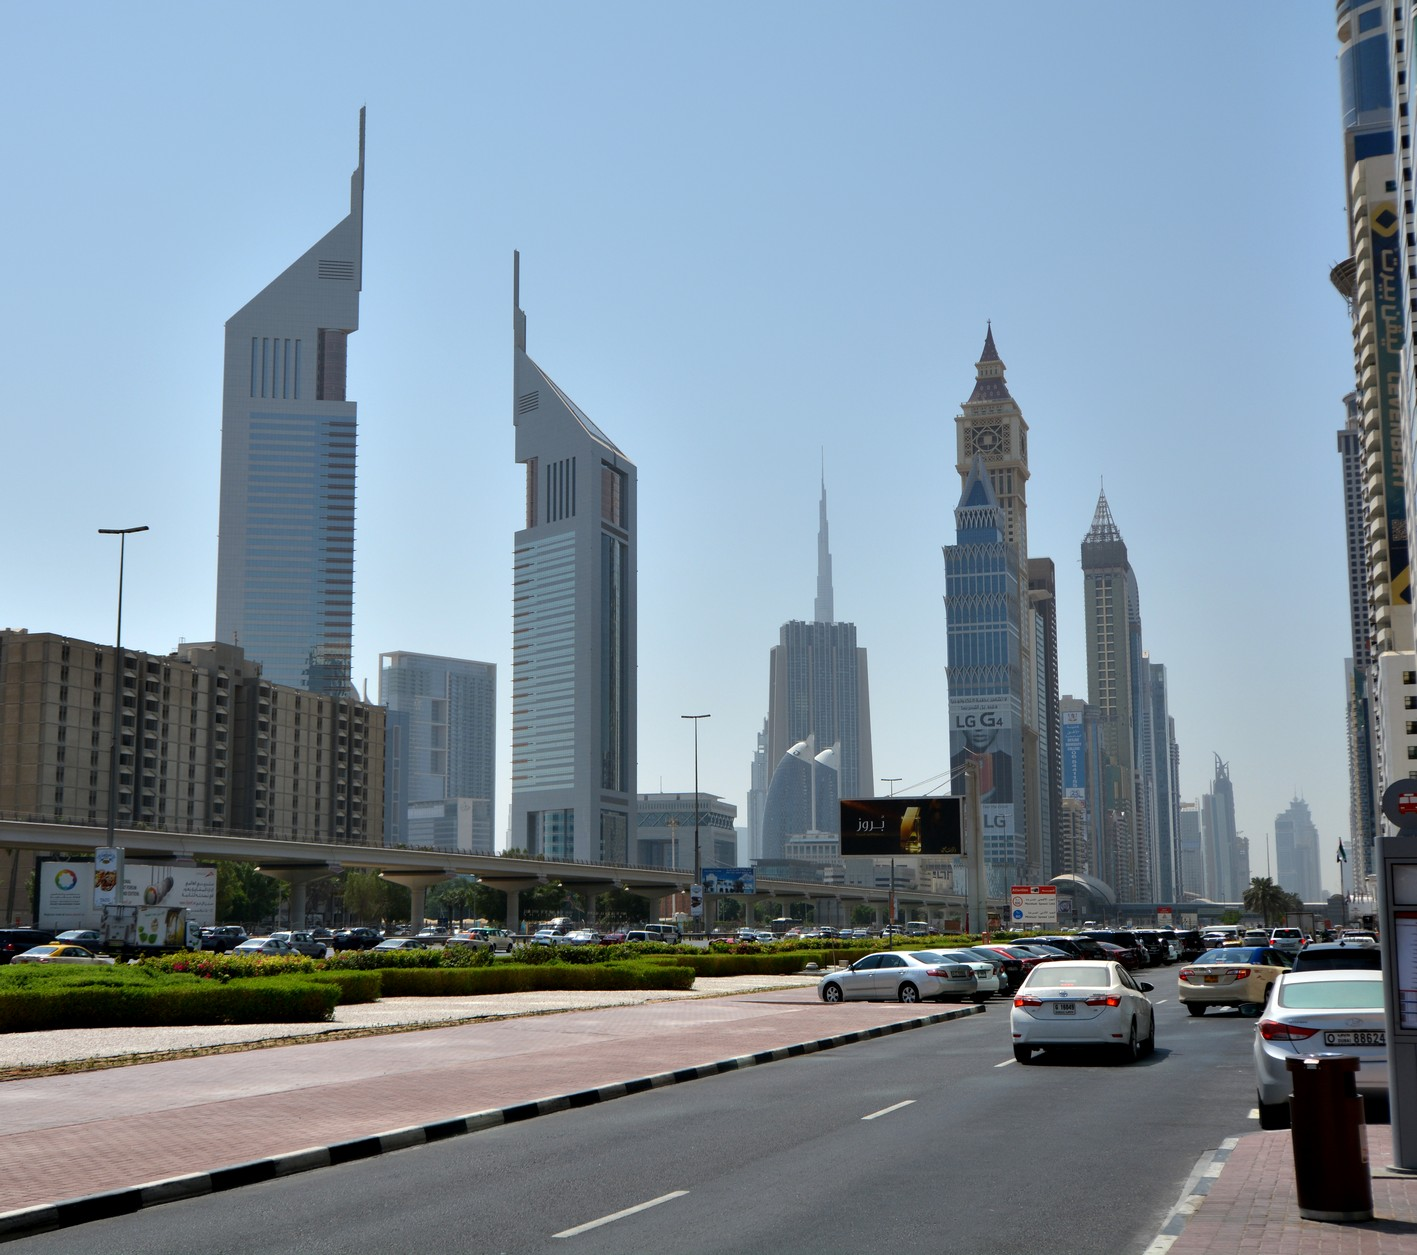 SHEIK ZAYED ROAD OG EMIRATES TOWERS